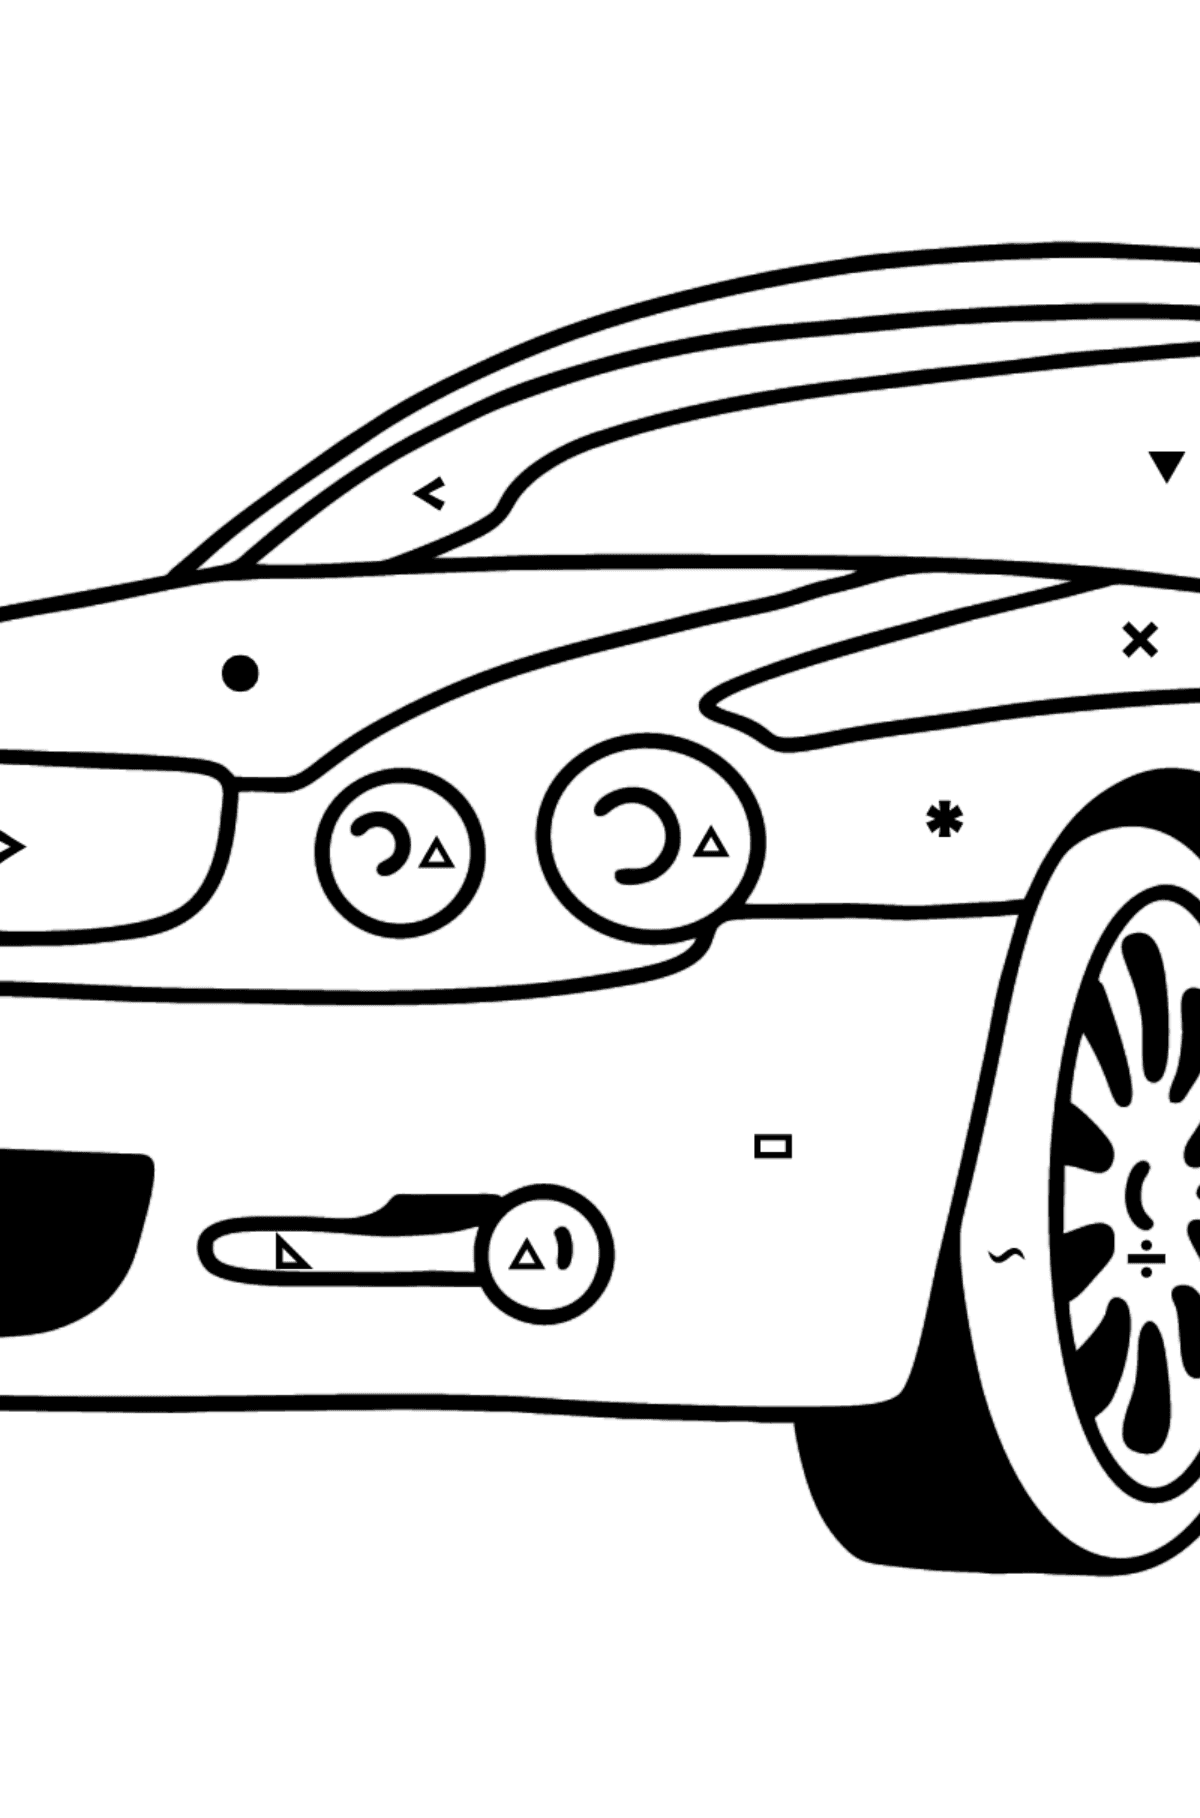 Jaguar GT coloring page - Coloring by Symbols and Geometric Shapes for Kids